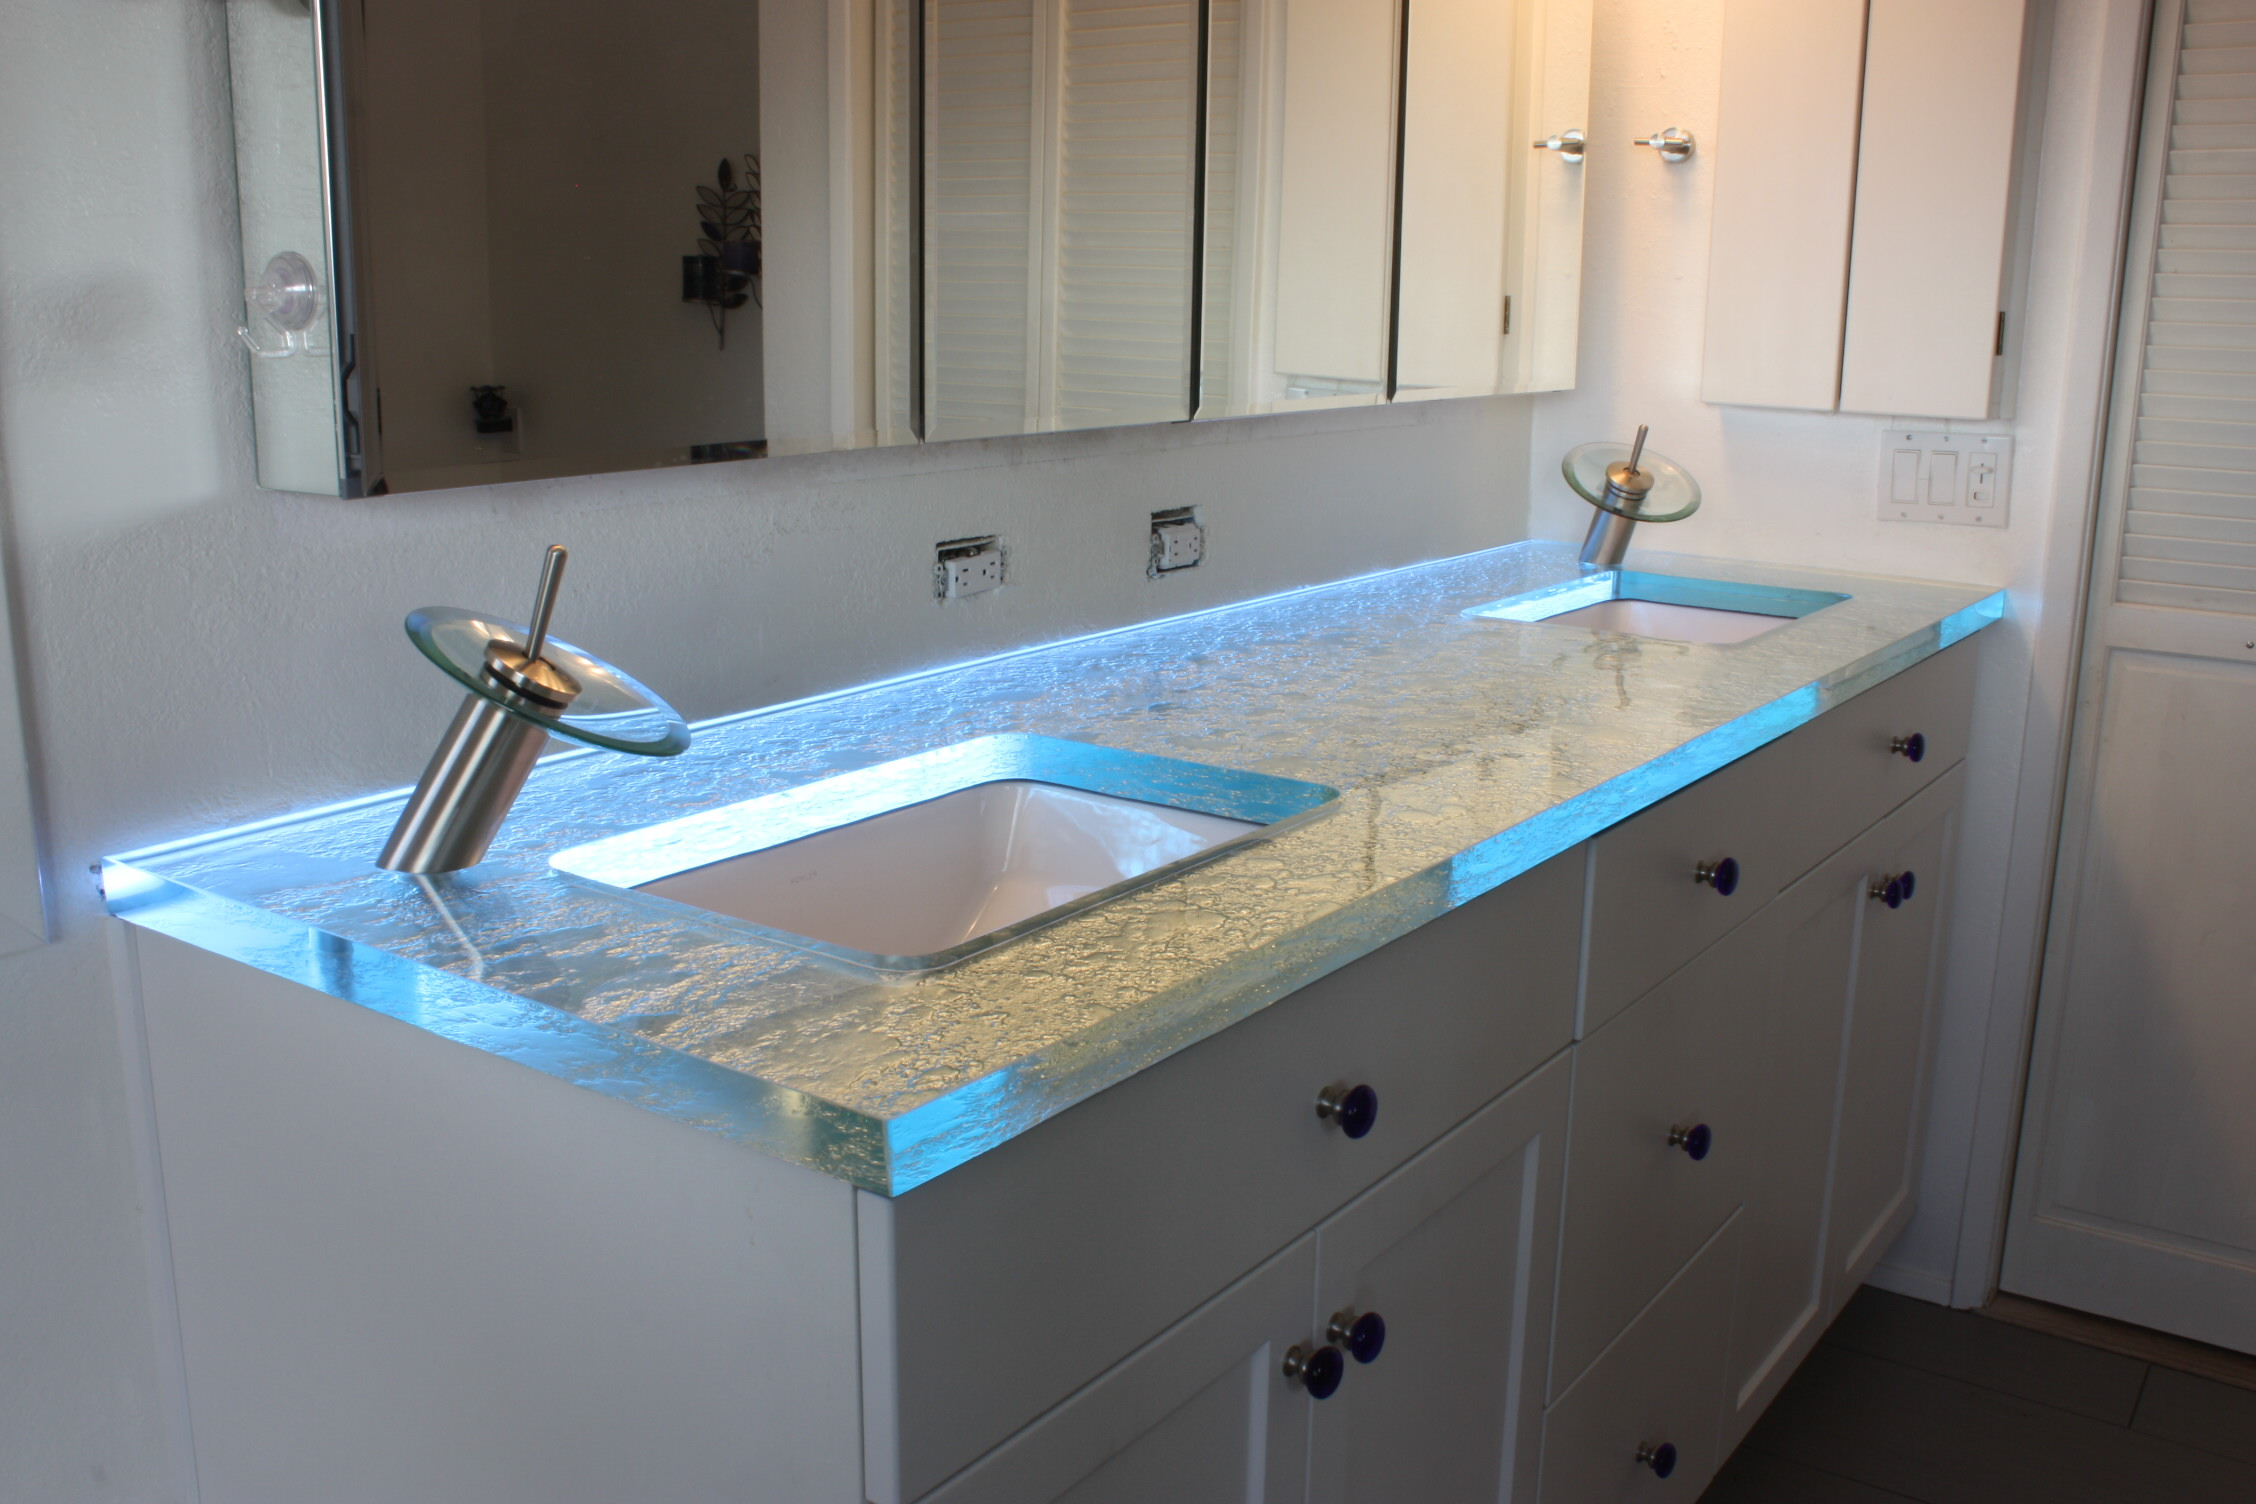 Modern Bathroom Vanity Led Light Crystal Front Mirror: Installing Lighting On A Glass Cabinet